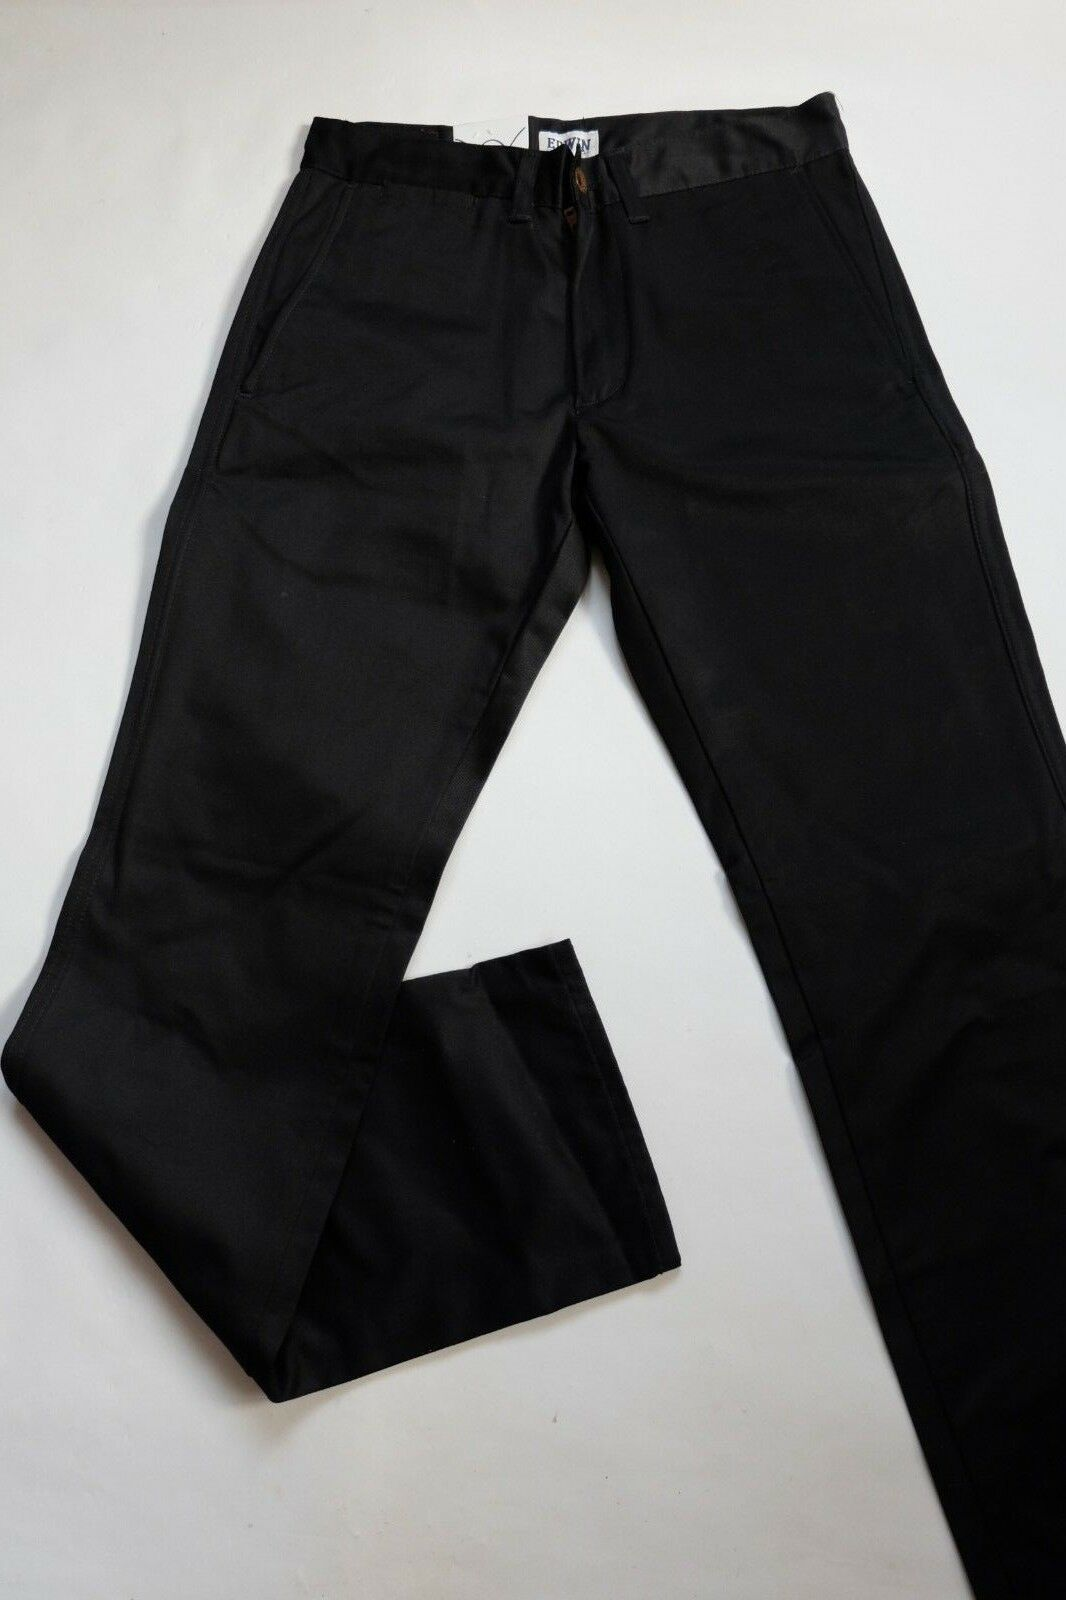 JEANS EDWIN  CLASSIC CHINO  (Noir unwashed)  L33 TAILLE W36 L33  4e9067